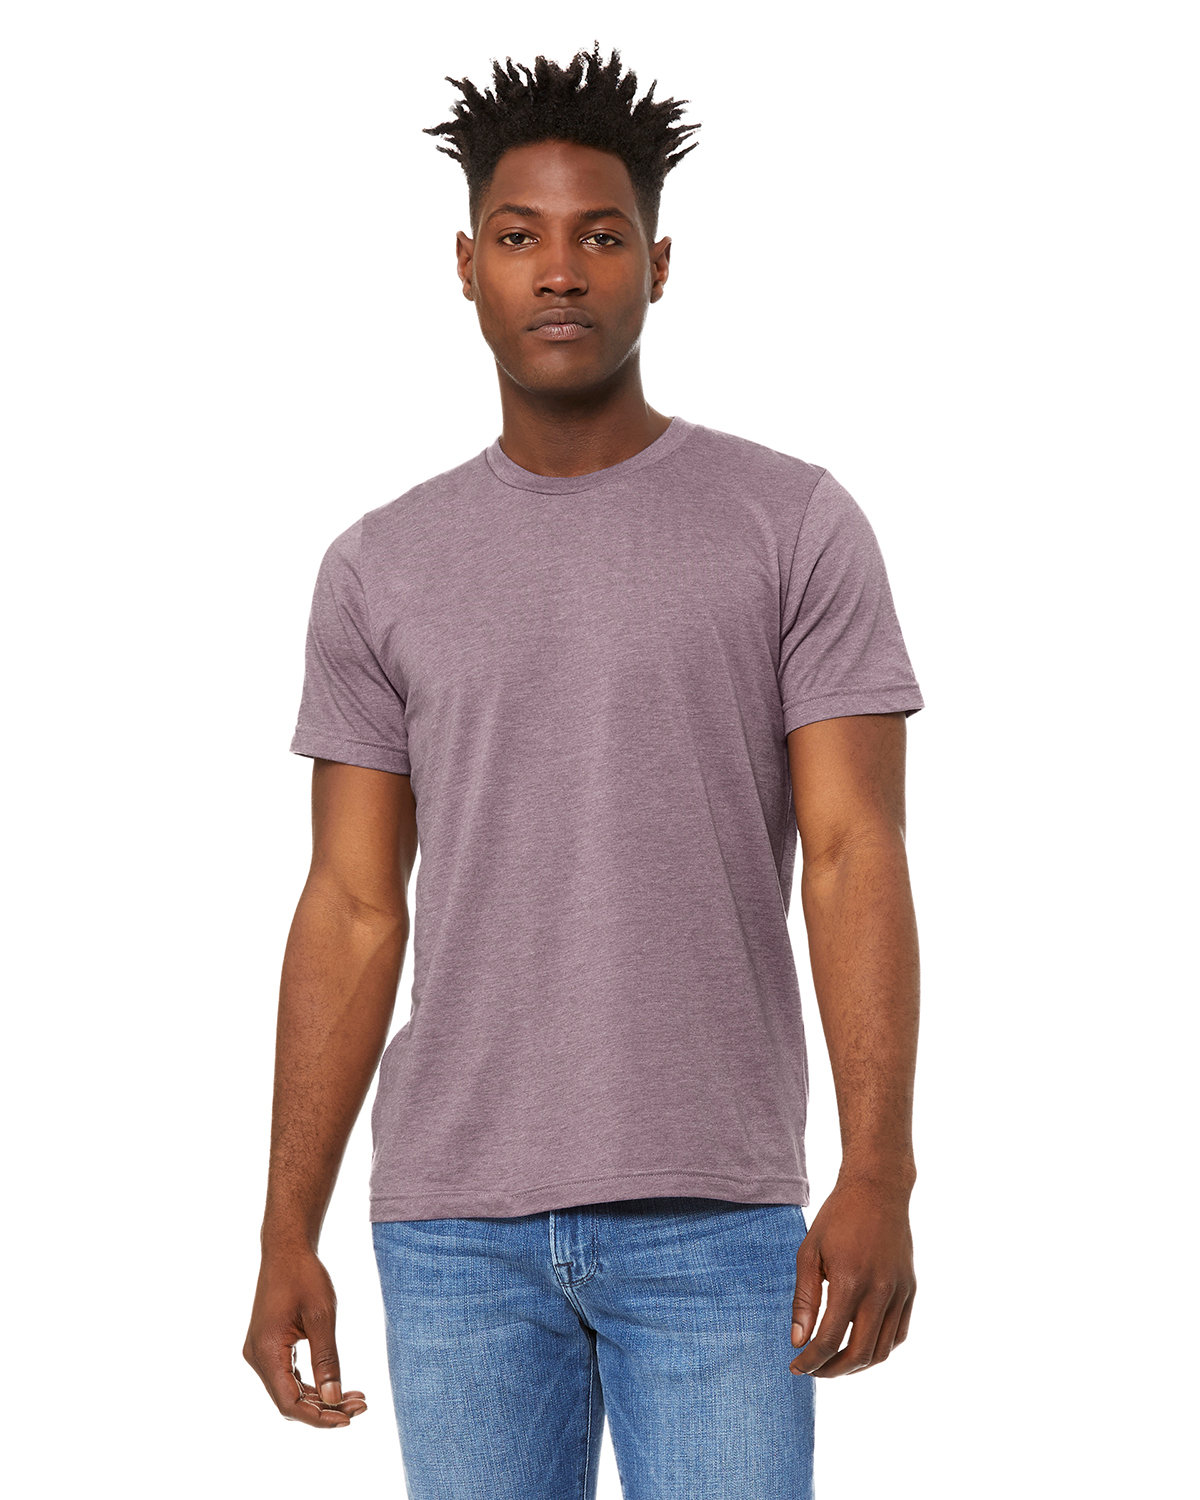 Bella + Canvas Unisex Heather CVC T-Shirt HEATHER PURPLE